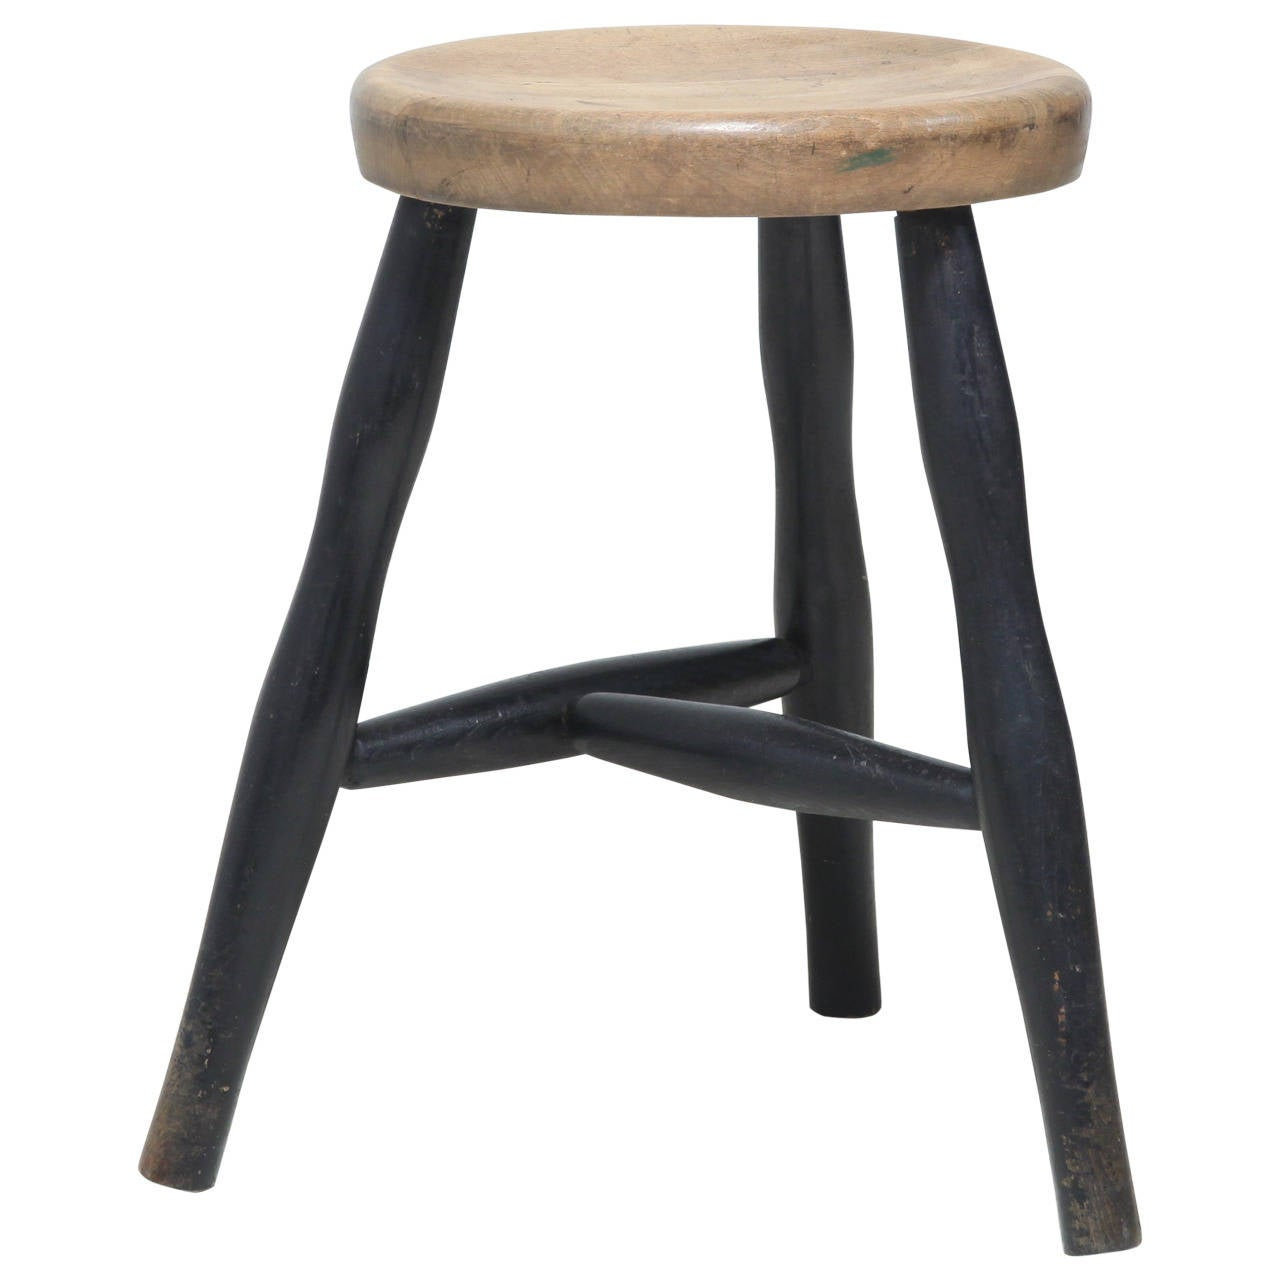 Tribase Stool with Thick Wooden Seat